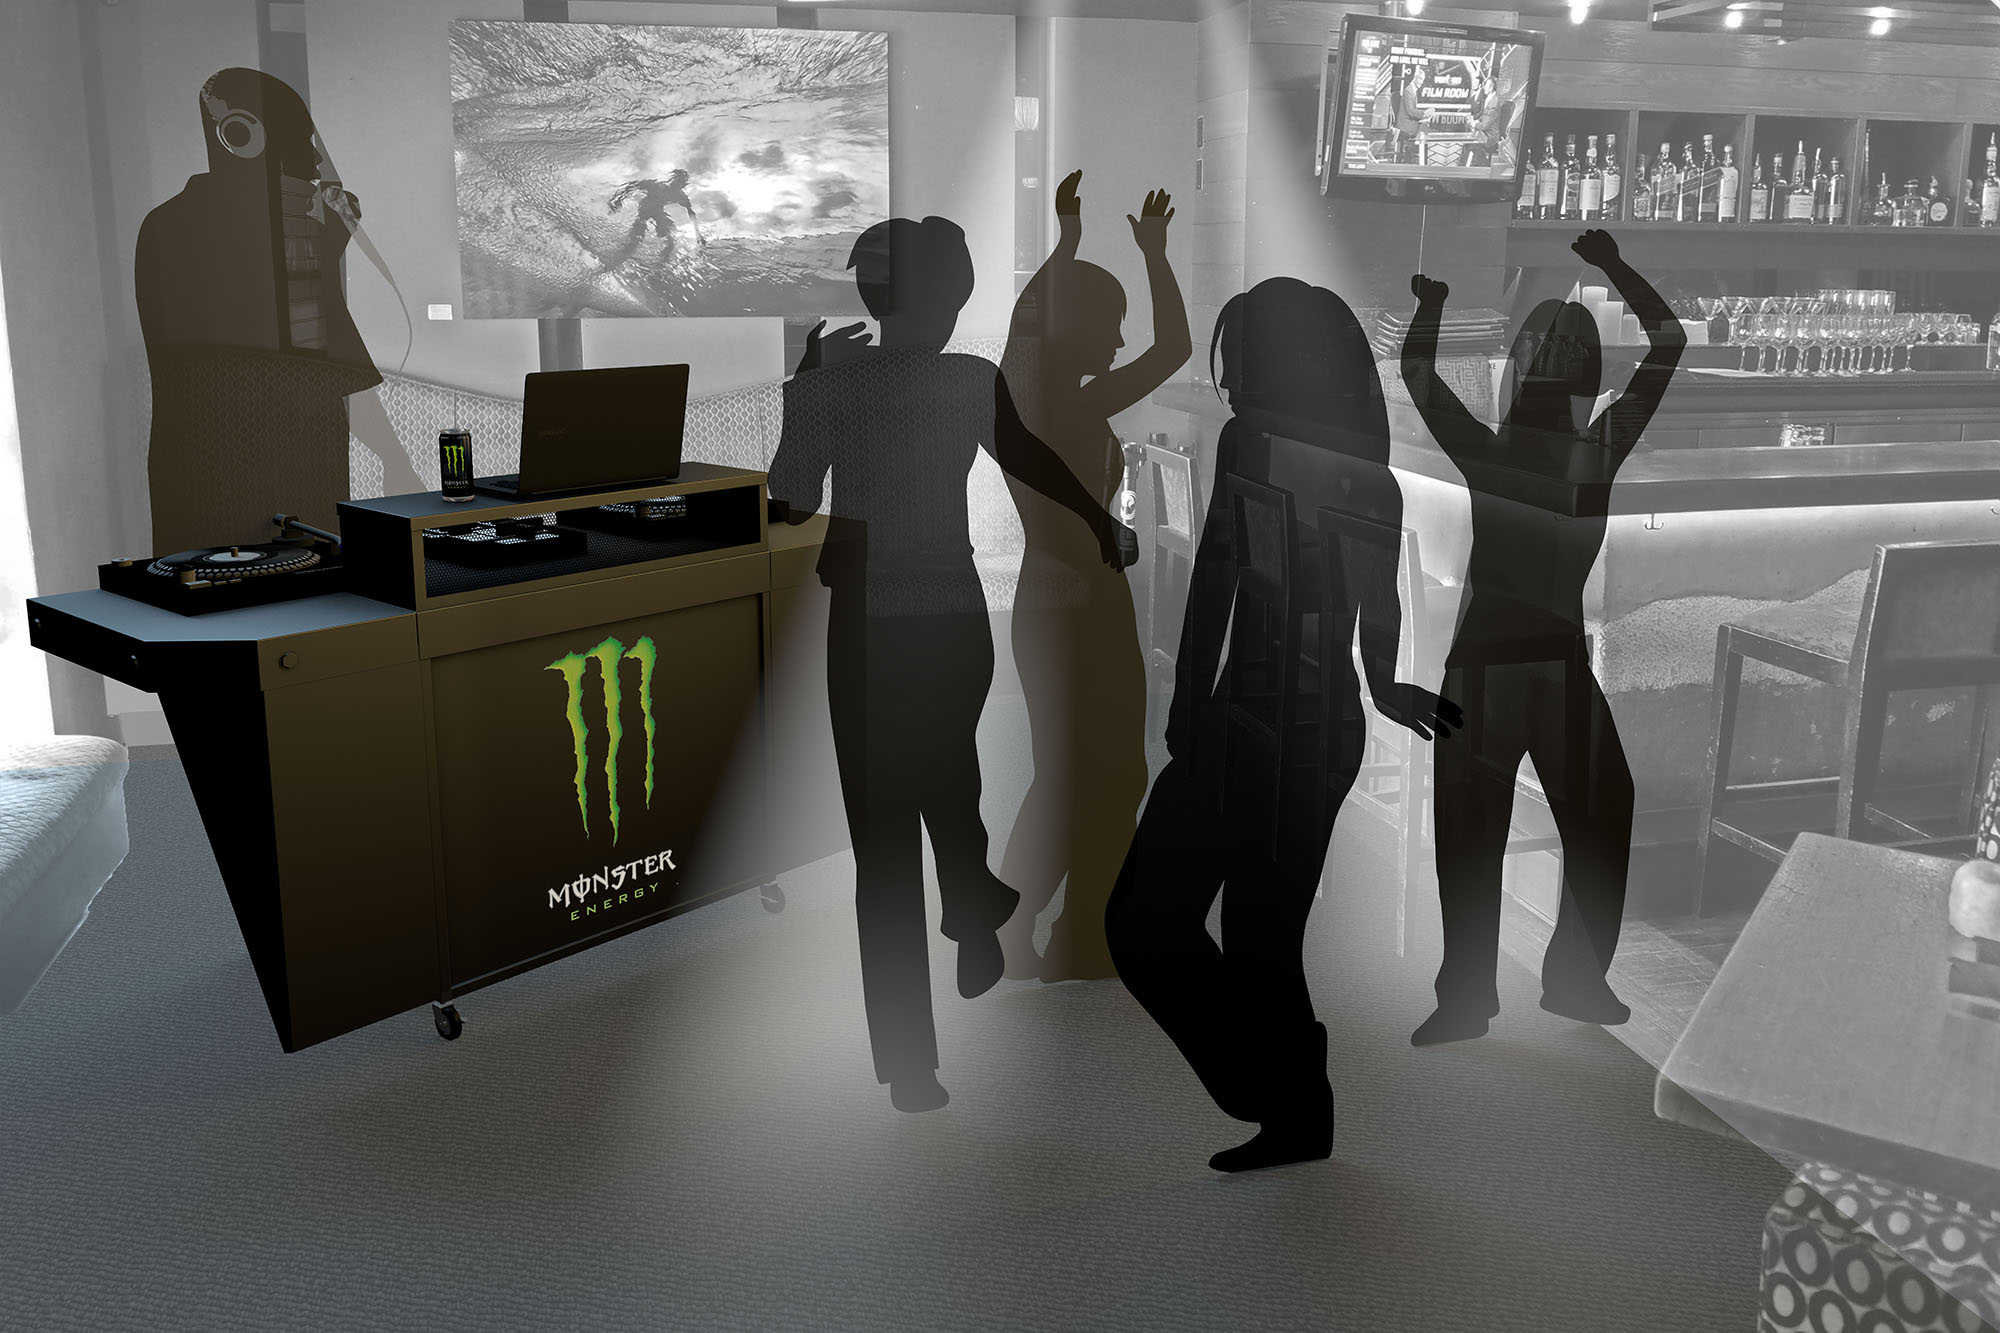 Monster Event Bar in Club sm.jpg